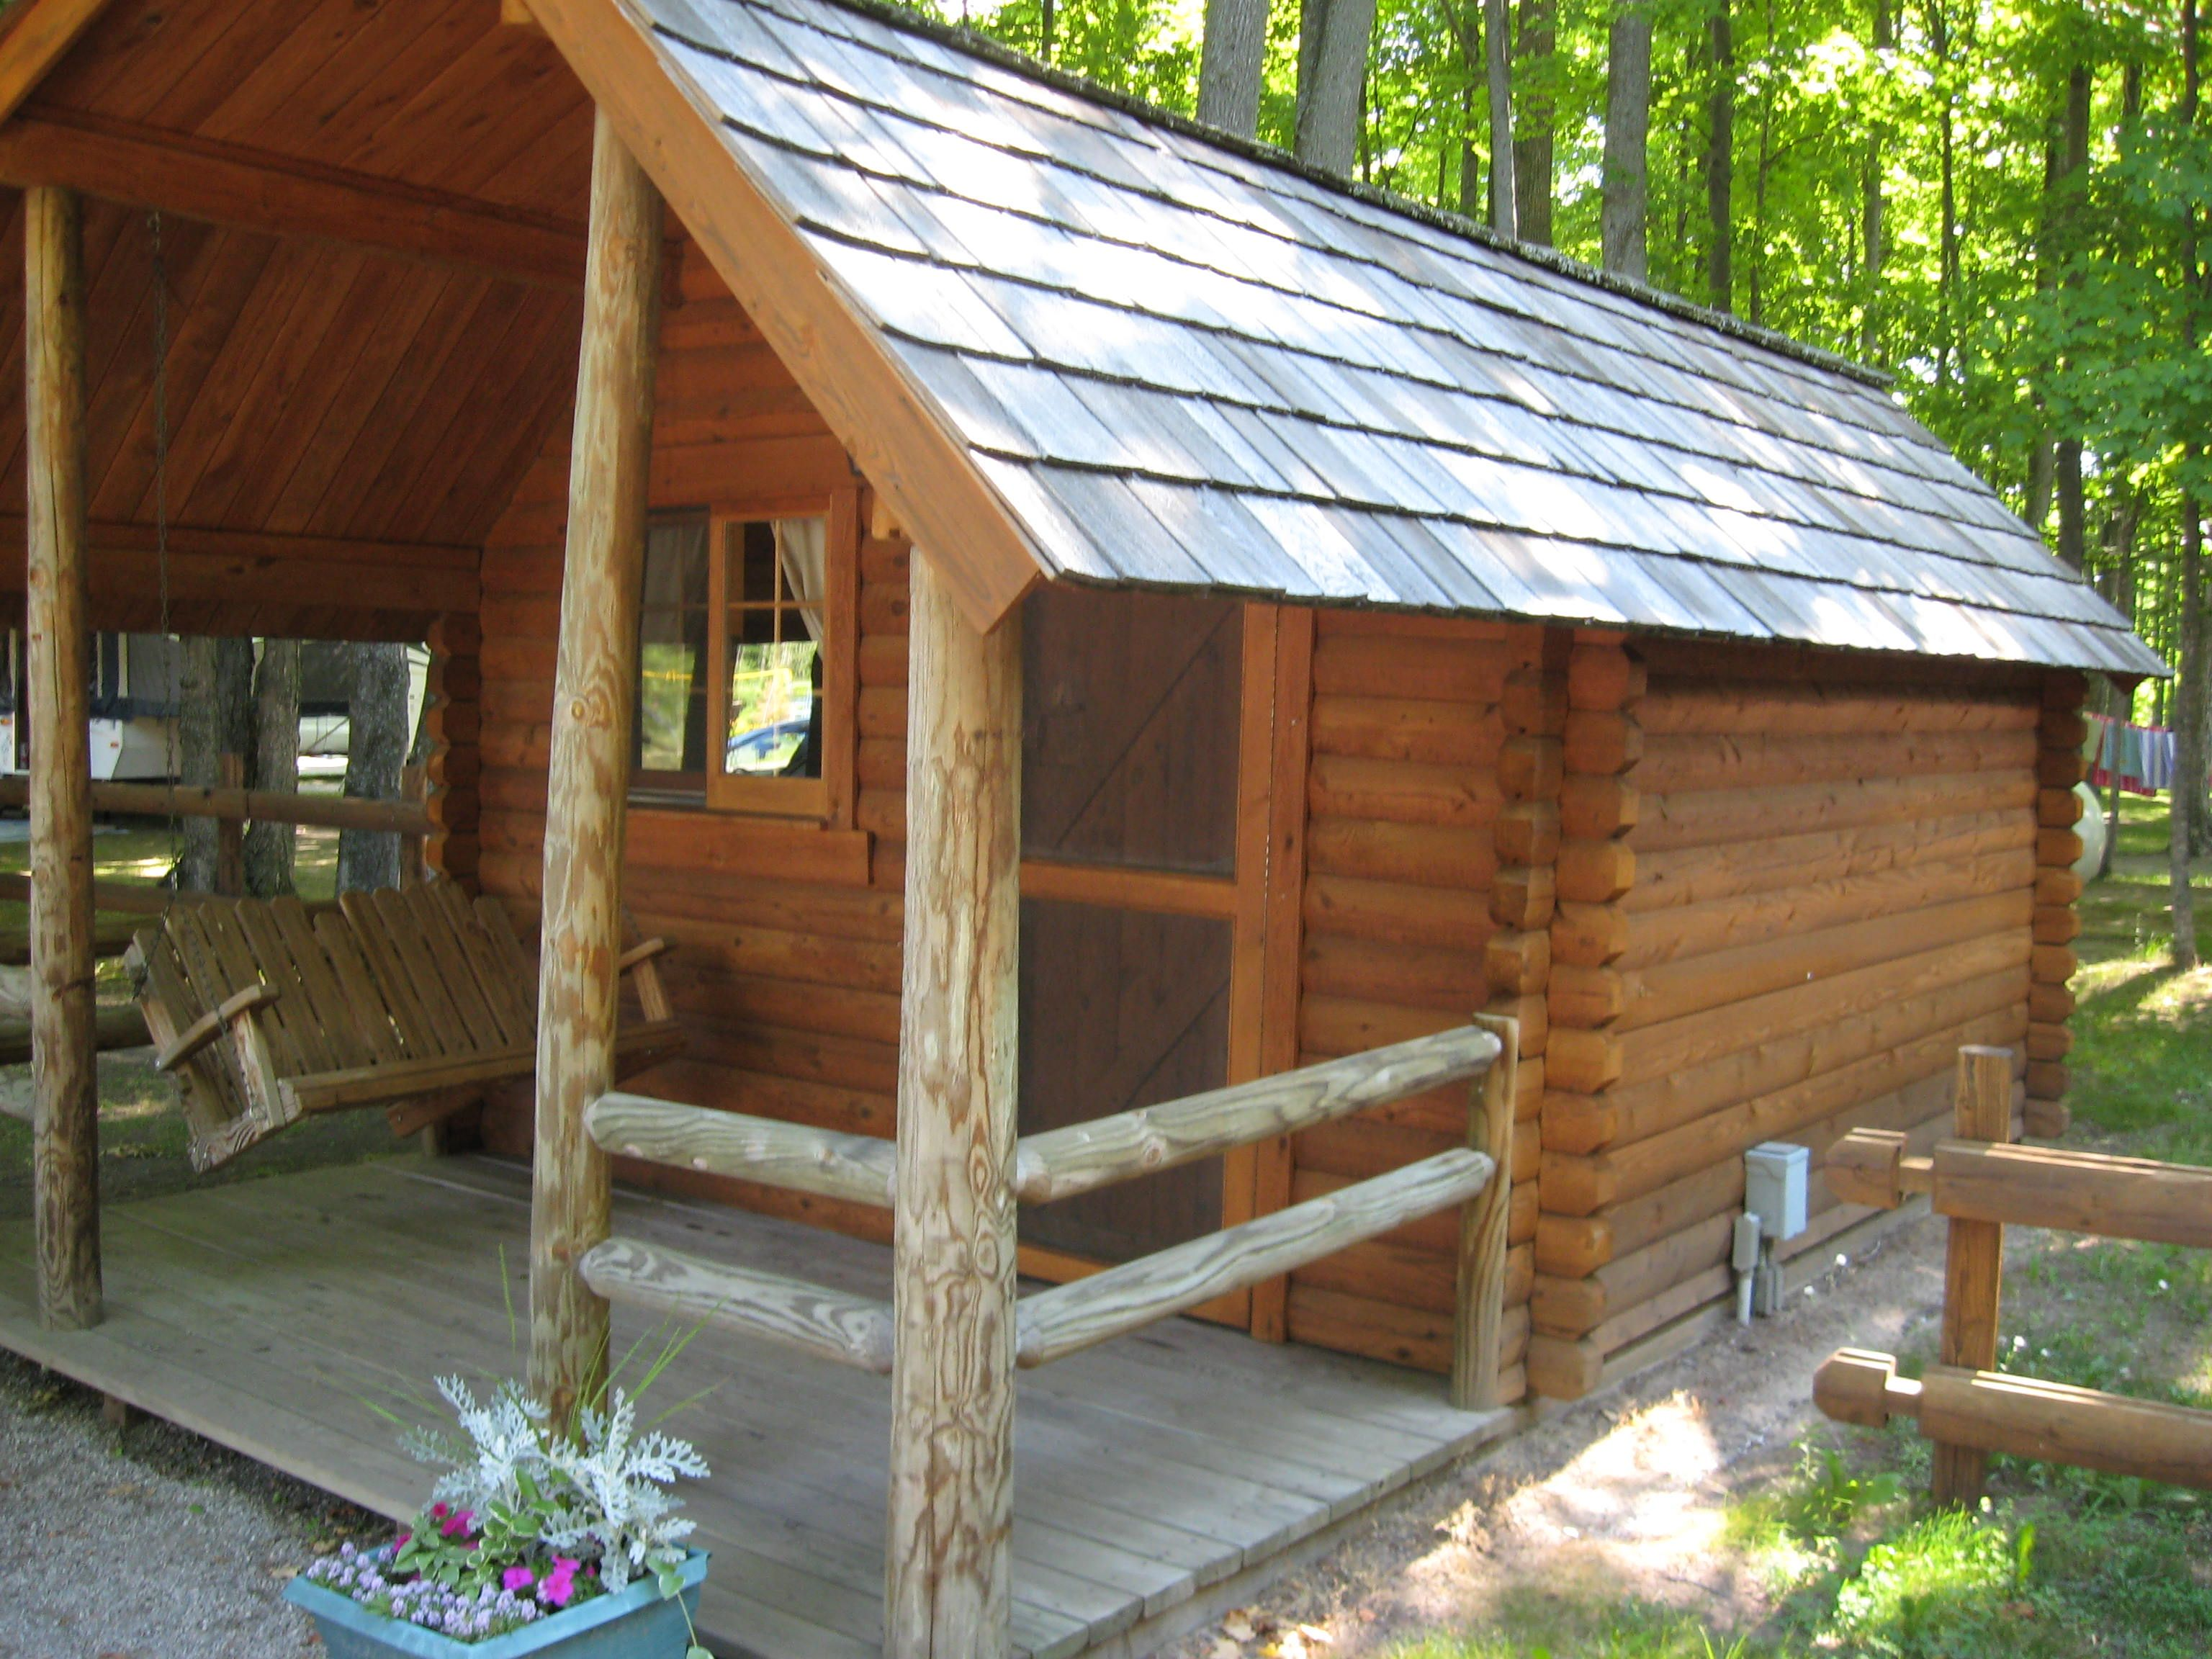 knotty pine city pin just traverse log in with bellaire me interior cabin s cabins